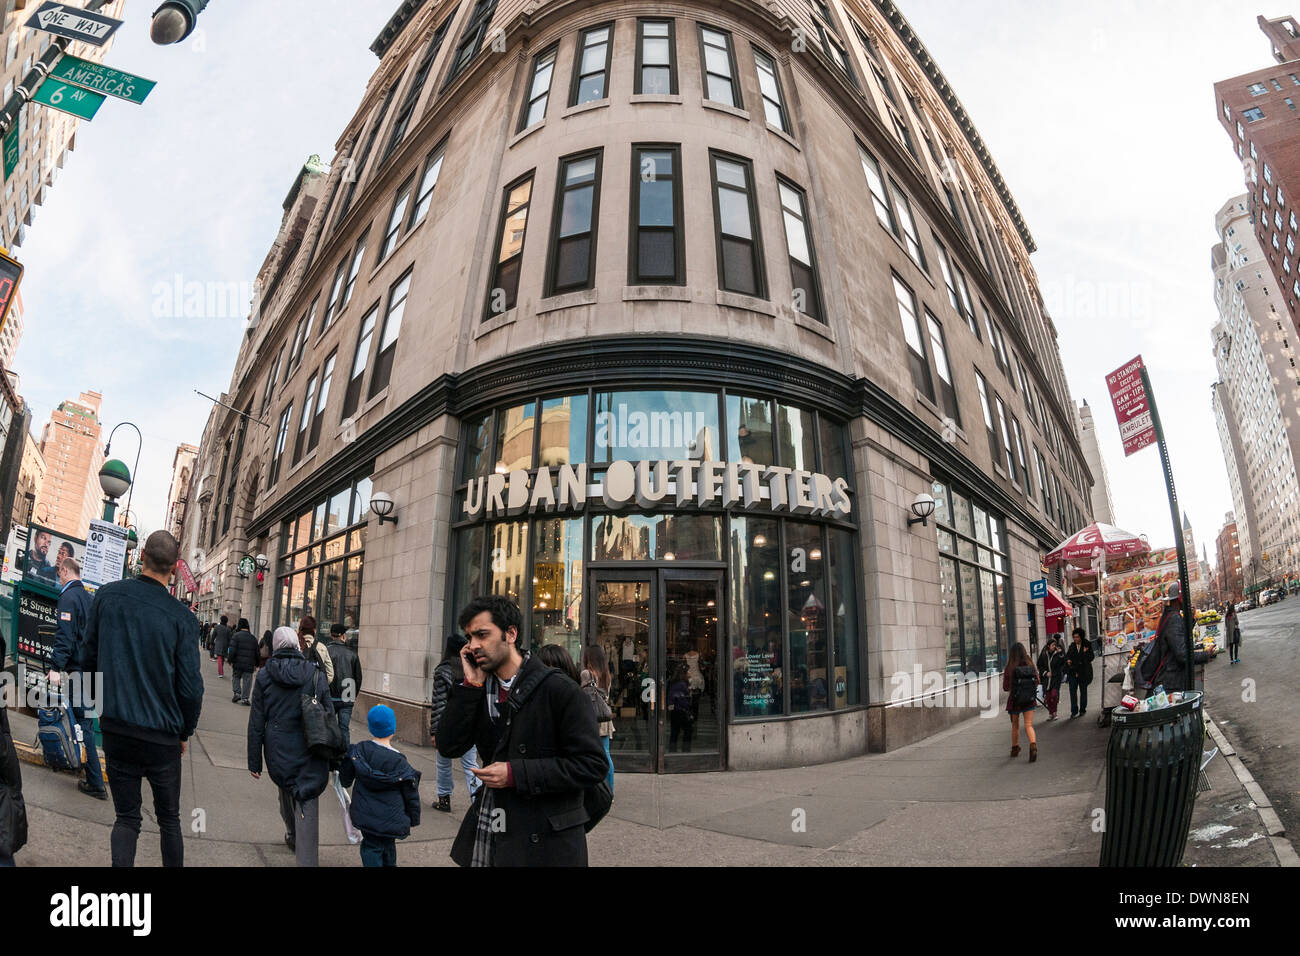 Urban Outfitters Nyc High Resolution Stock Photography And Images Alamy